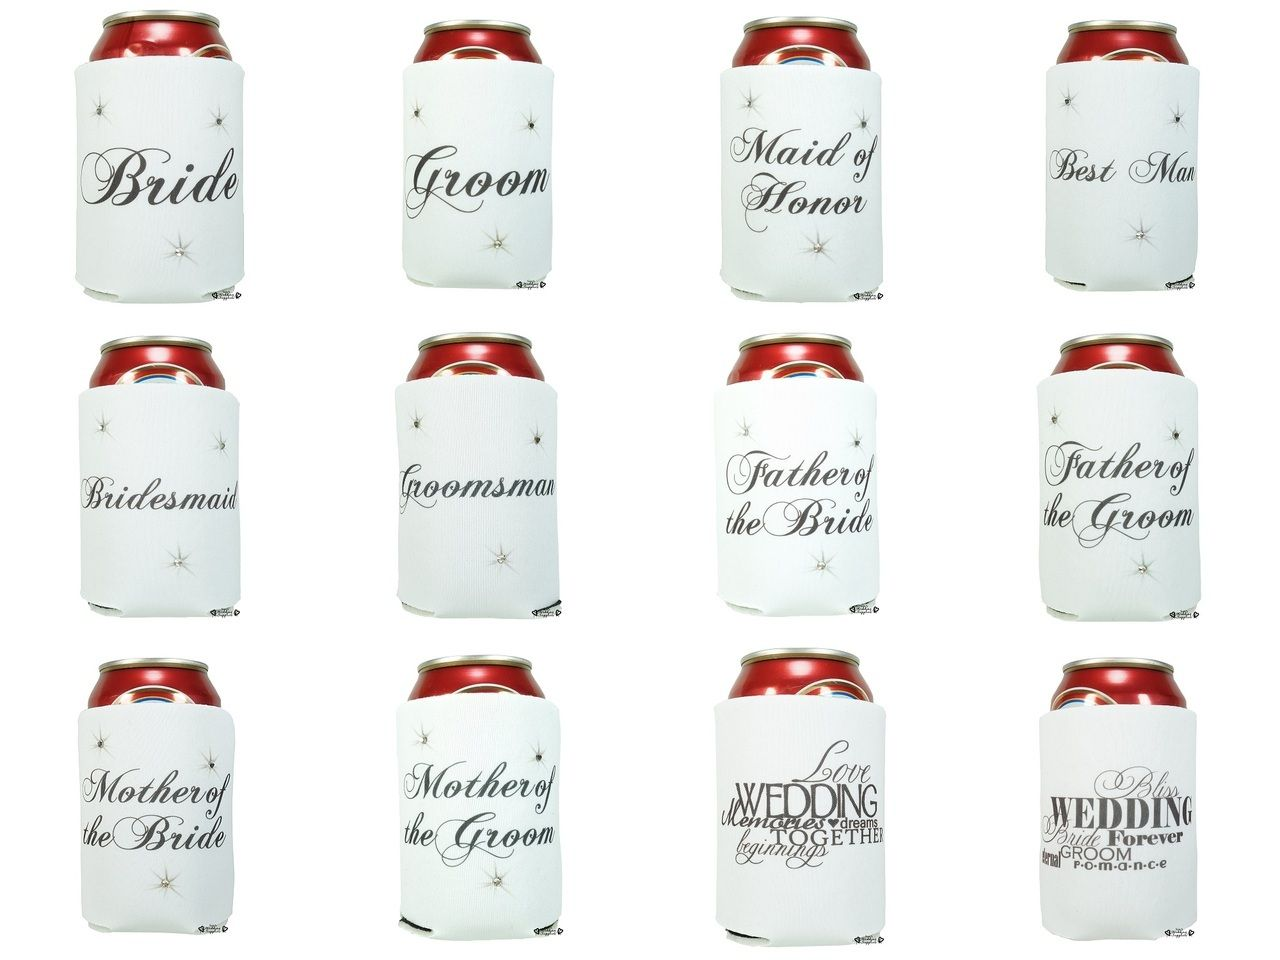 Wedding Stubby Holders Koozies Kozy | Wedding, Favors and Weddings